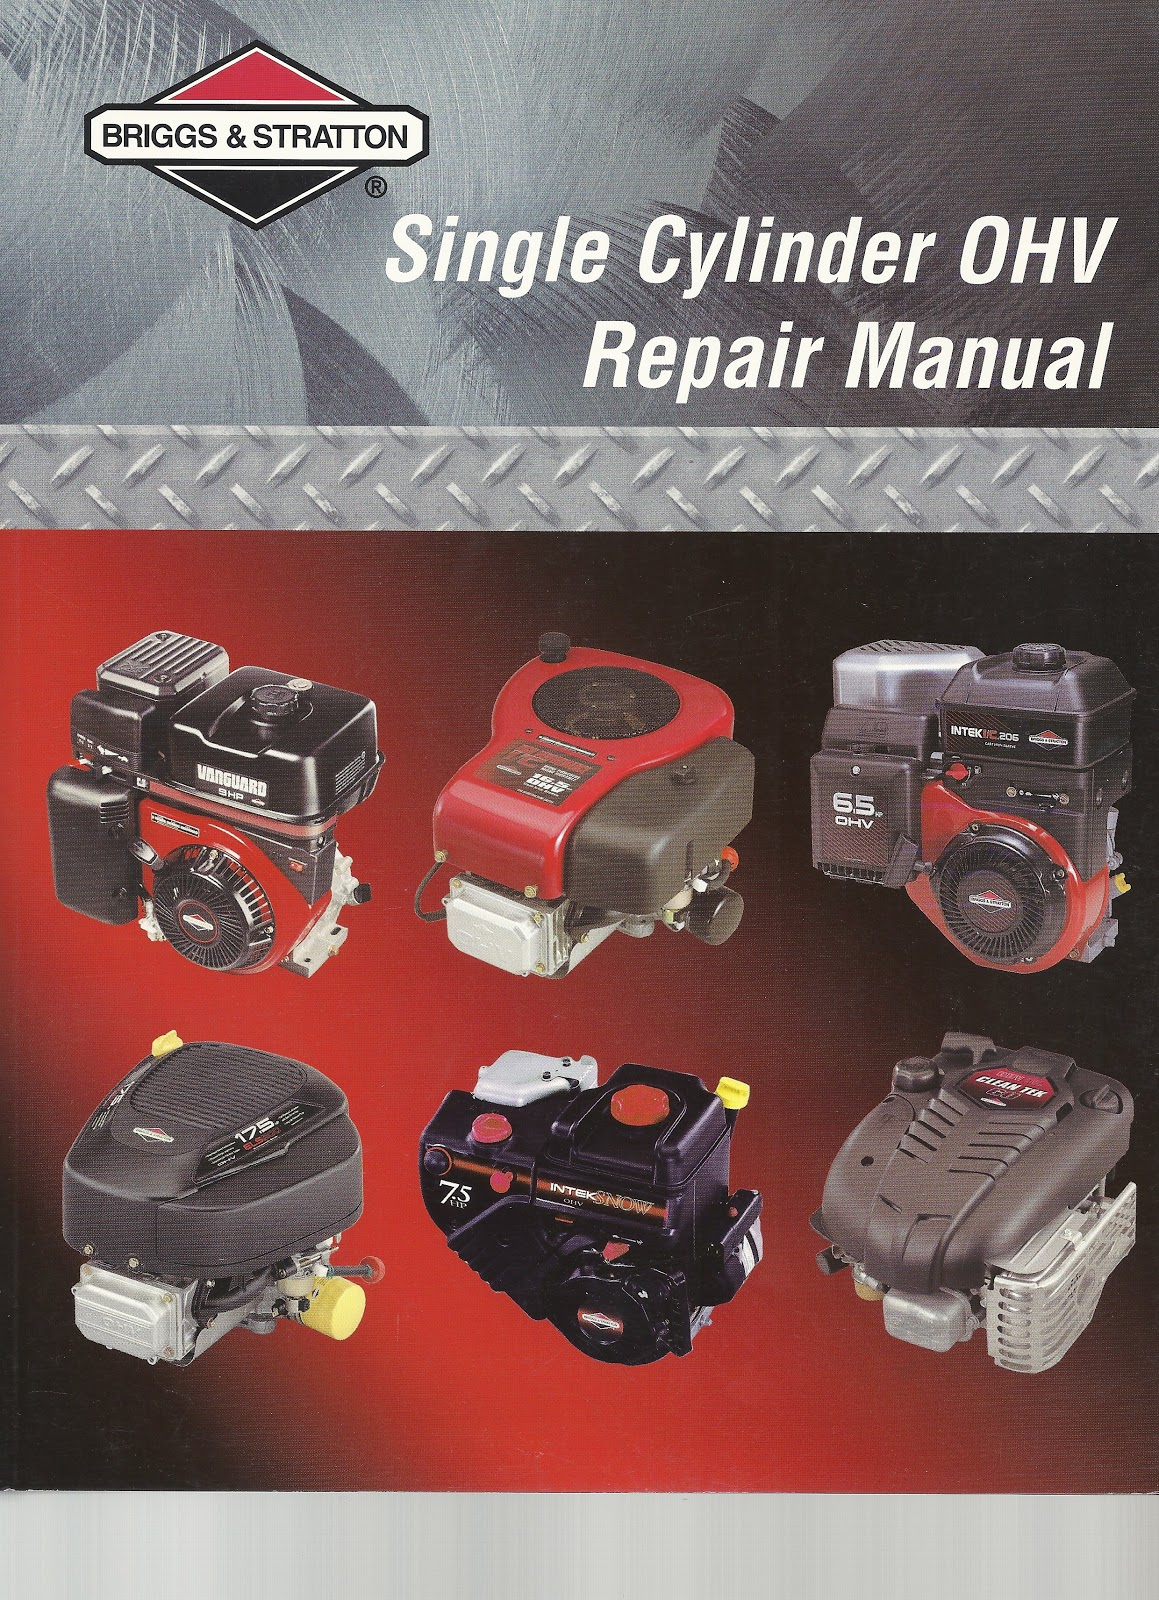 briggs u0026 stratton 270962 repair manual for single cylinder 4 cycle  engines Array - 4 stroke rebuild post the fourth small engine repair manuals  rh ...